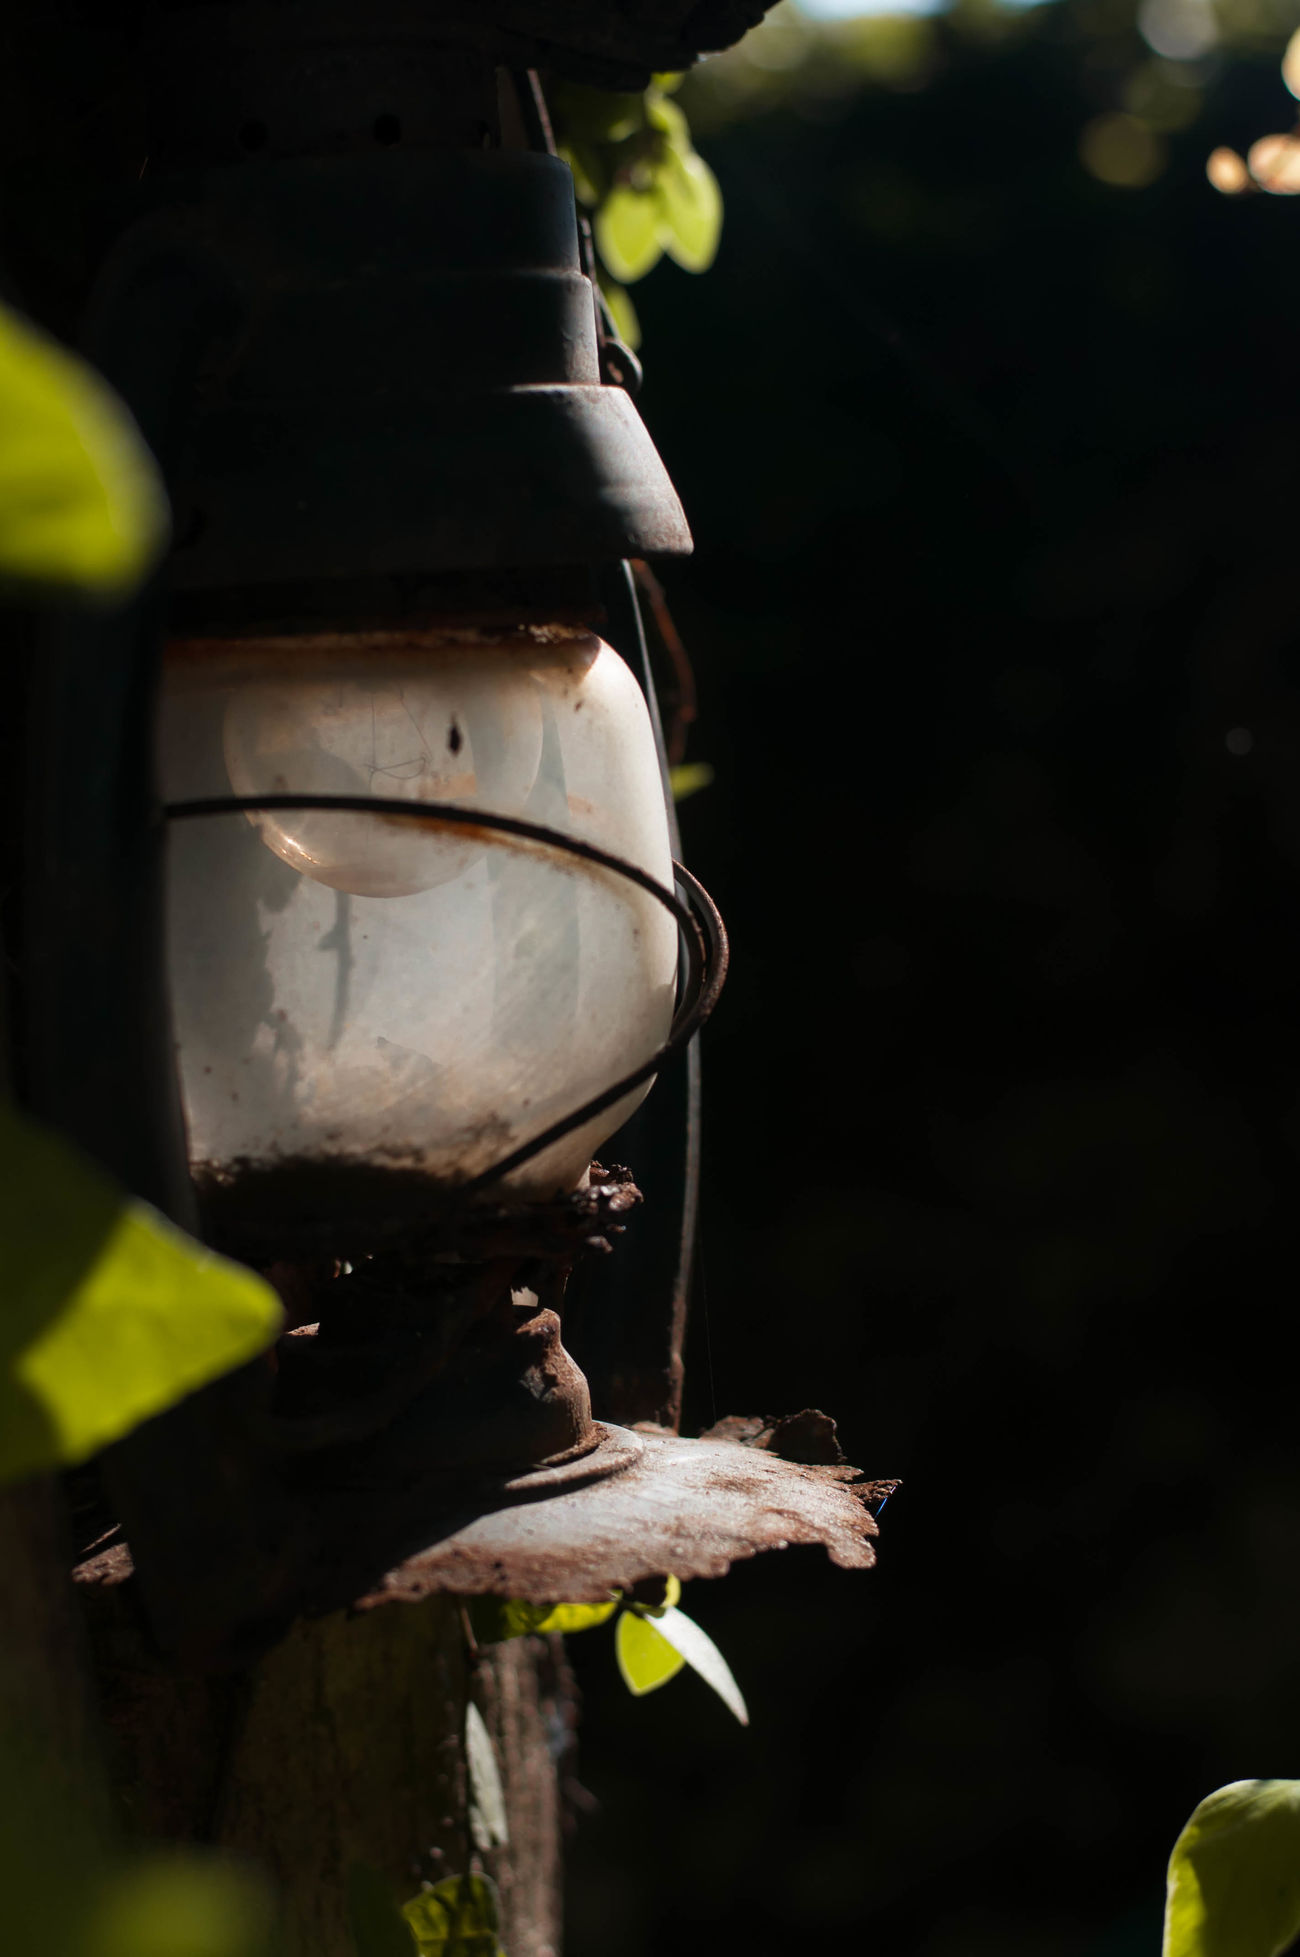 rusty lanthern Beauty In Nature Close-up Day Focus On Foreground Freshness Nature No People Outdoors Rusty Lantern Sunlight Tree Nikond90 The Great Outdoors - 2017 EyeEm Awards